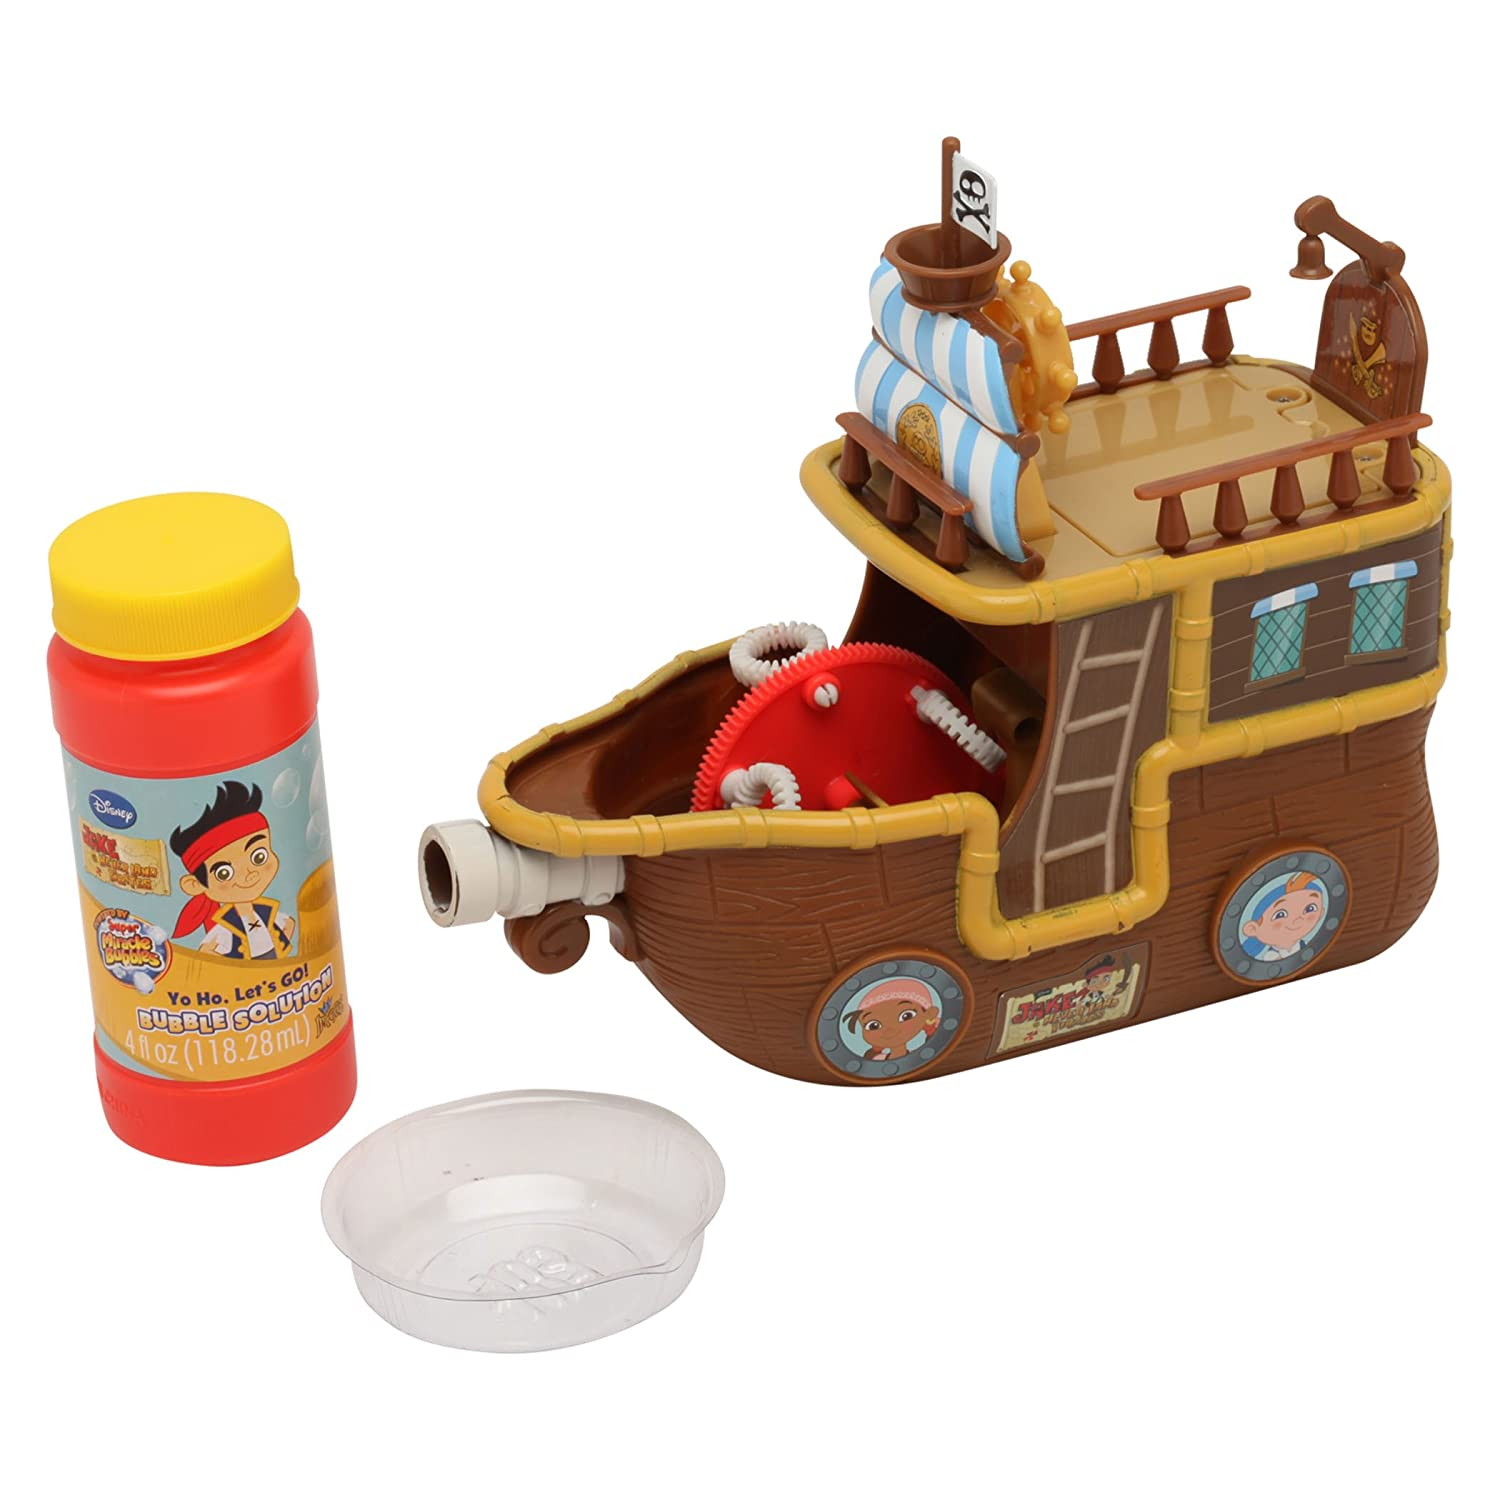 Imperial Toy Jake and The Never Land Pirates Yo Ho Let's Go 海賊船 バブルマシン B00C2TOGSO